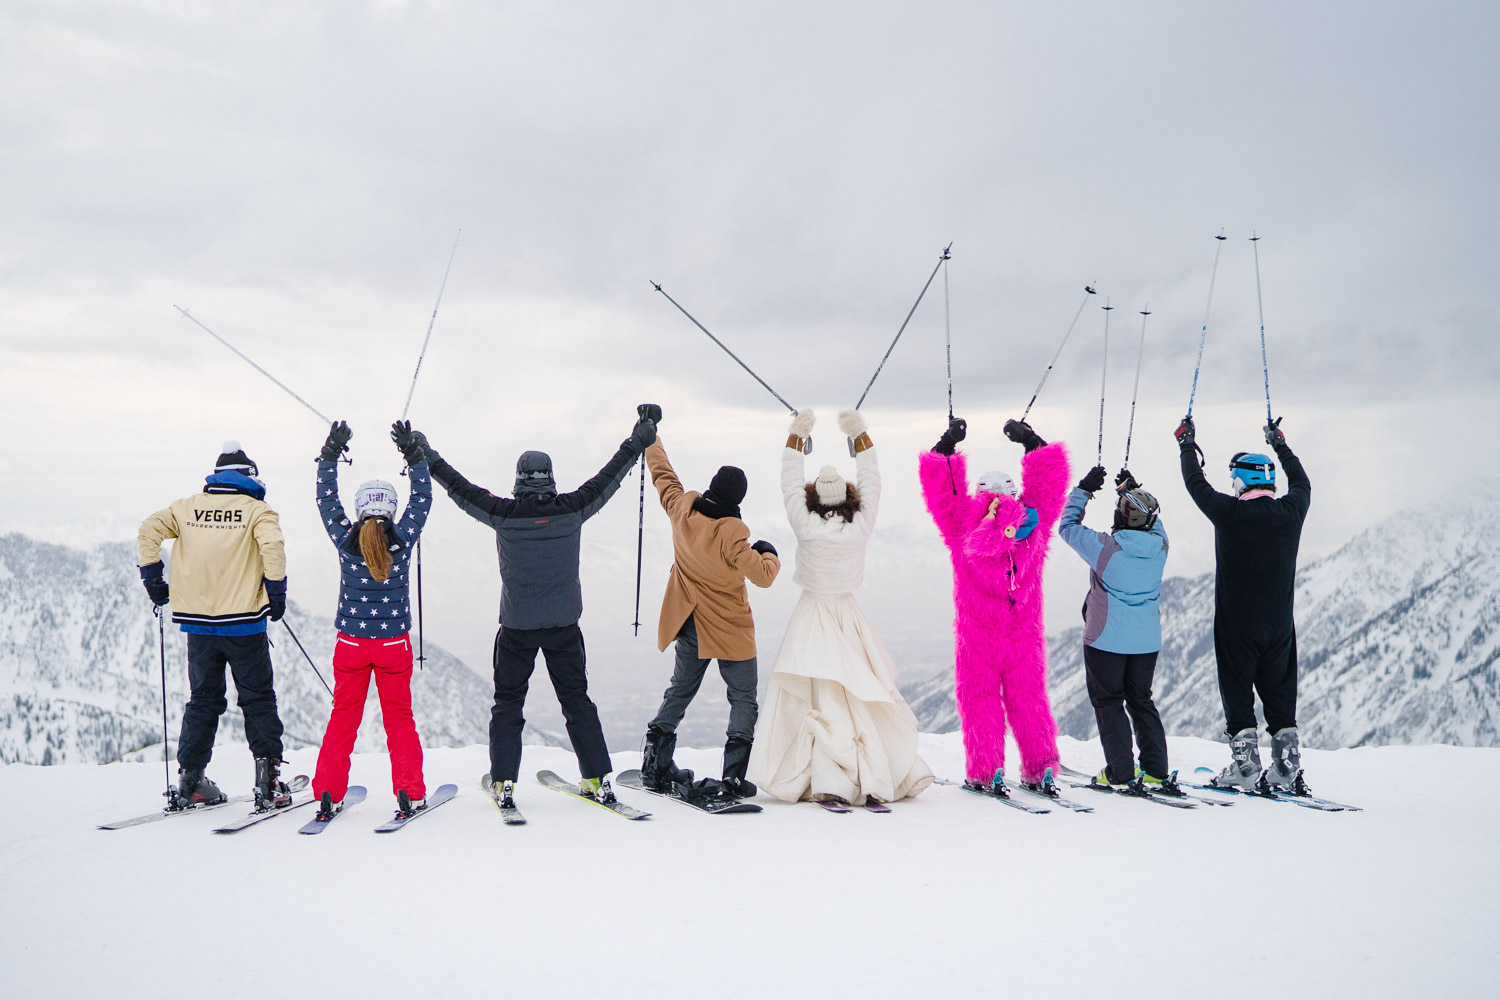 wedding party celebrating with poles up on snowy mountain top